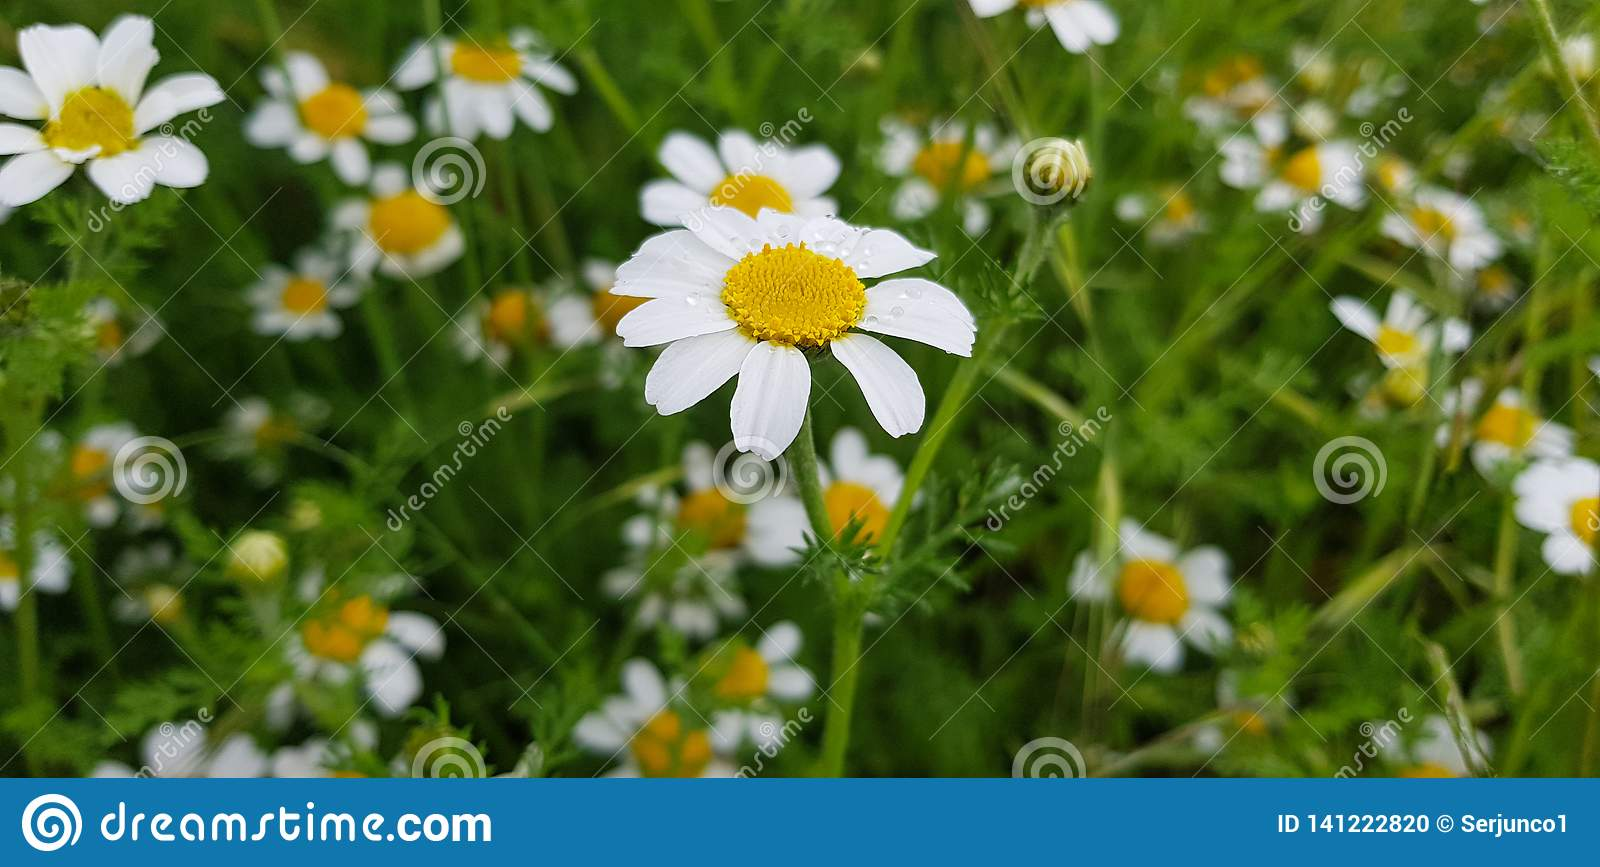 daisy flower detail with its white petals receiving sunlight on a background of green leaves and other daisy flowers